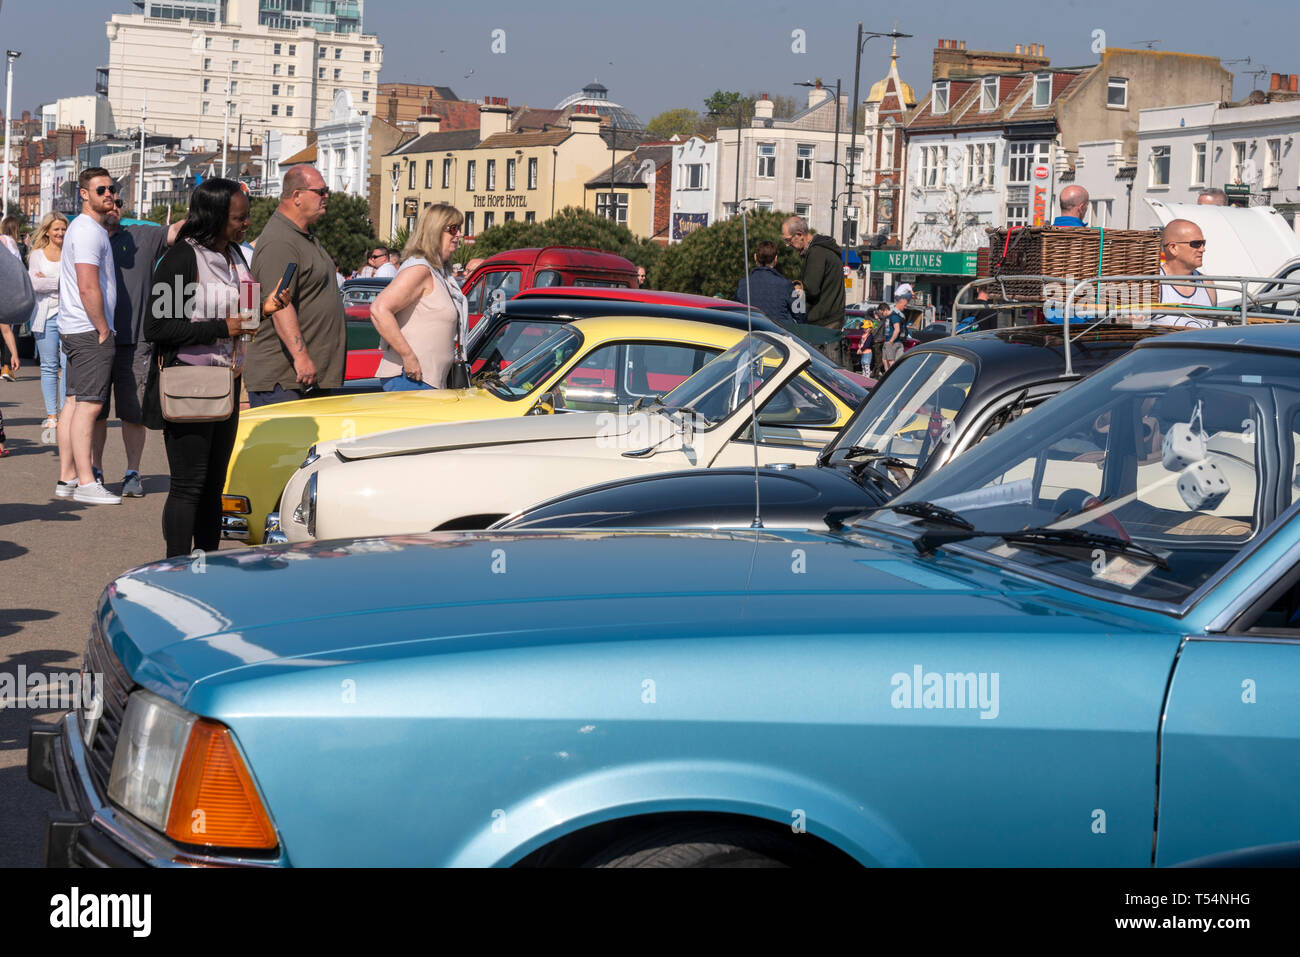 Classic car show taking place along the seafront at Marine Parade, Southend on Sea, Essex, UK. People. Sunny day Stock Photo